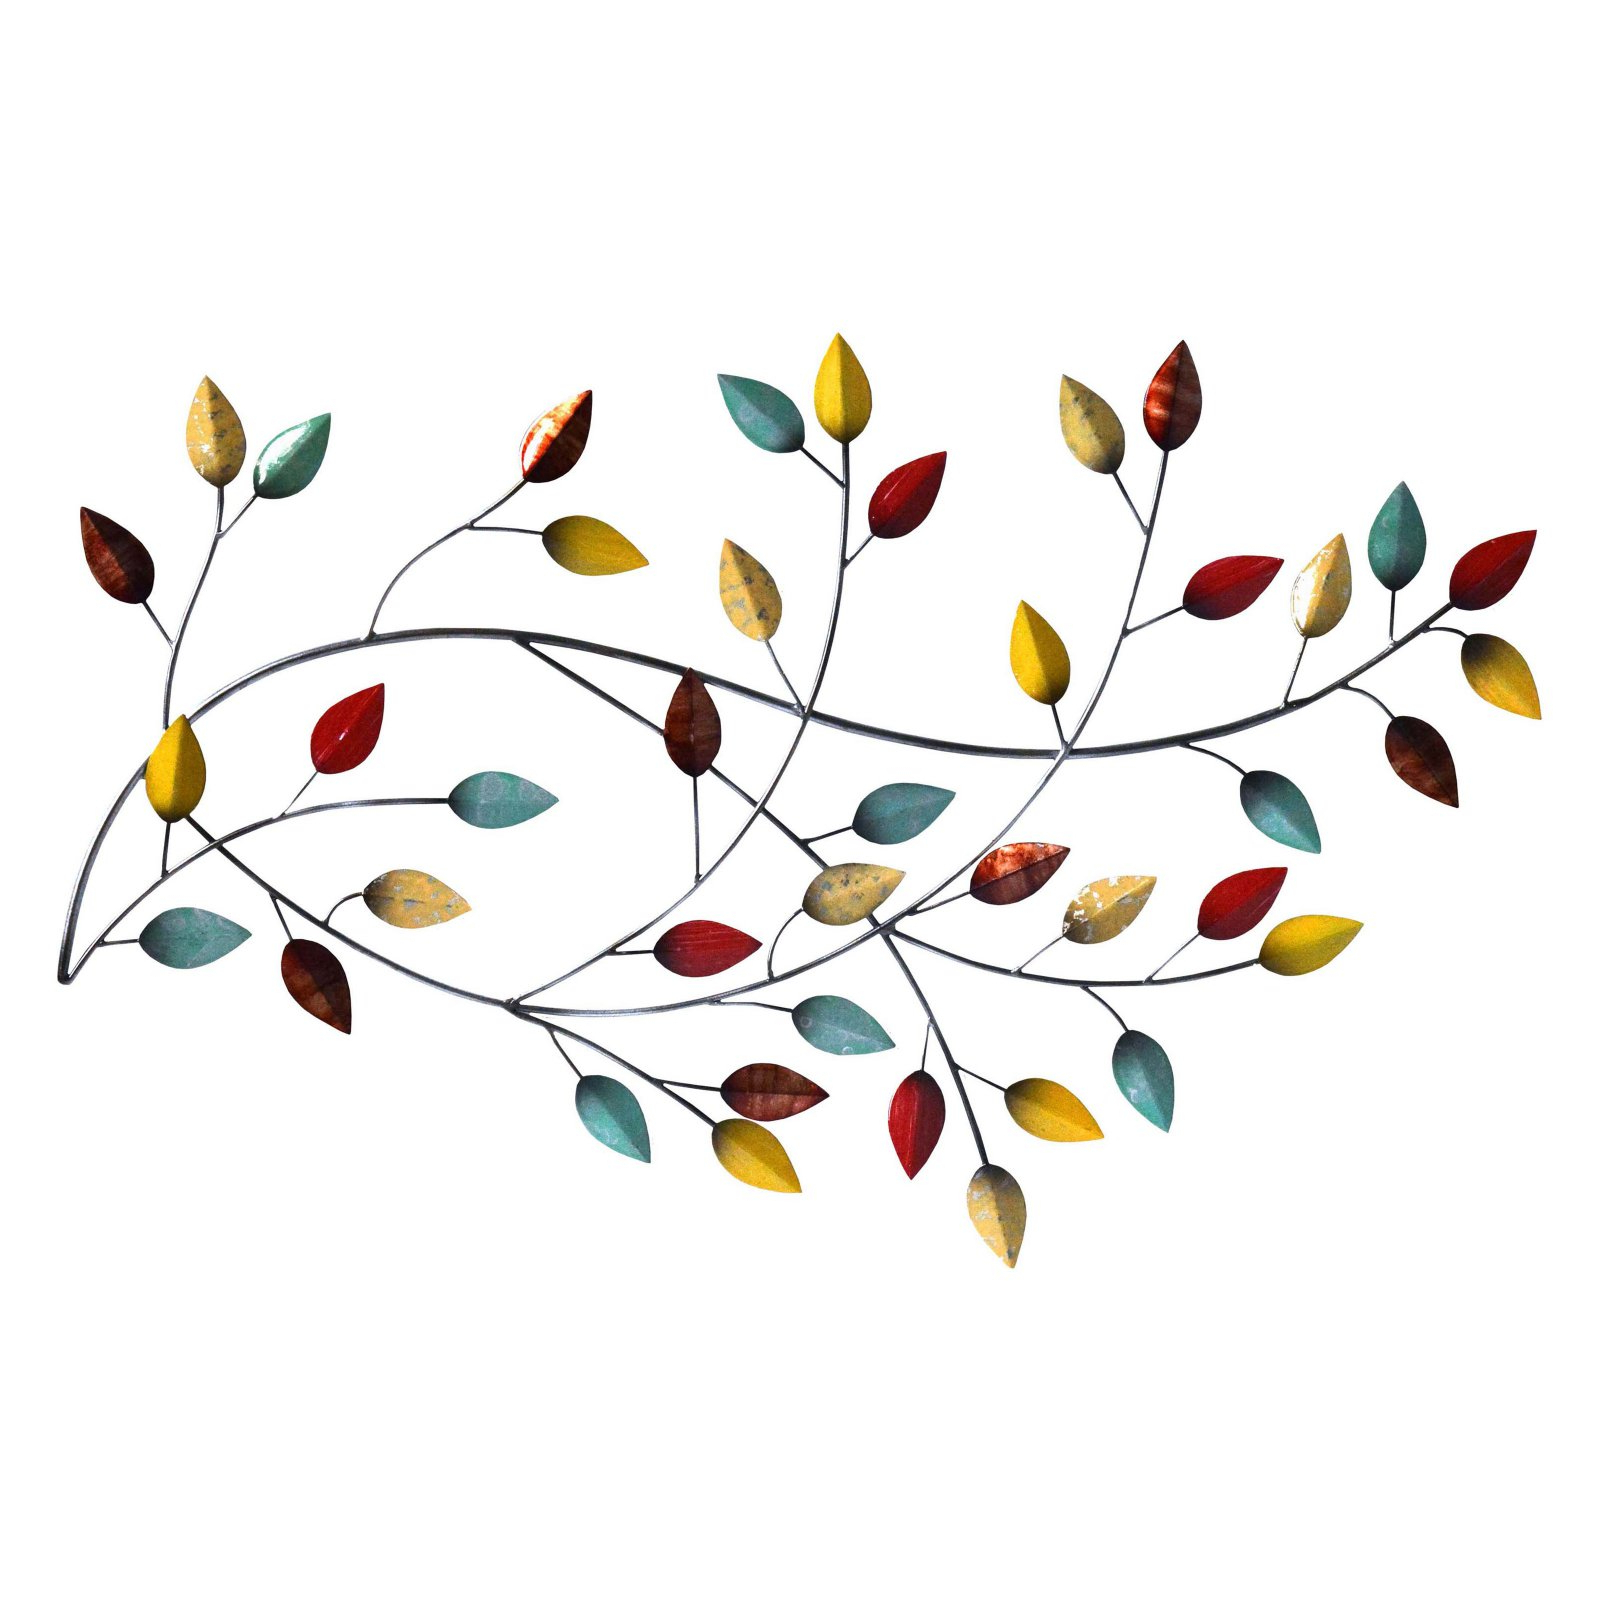 Blowing Leaves Wall Decor Inside Fashionable Stratton Home Decor Autumn Blowing Leaves Wall Decor – Walmart (View 5 of 20)